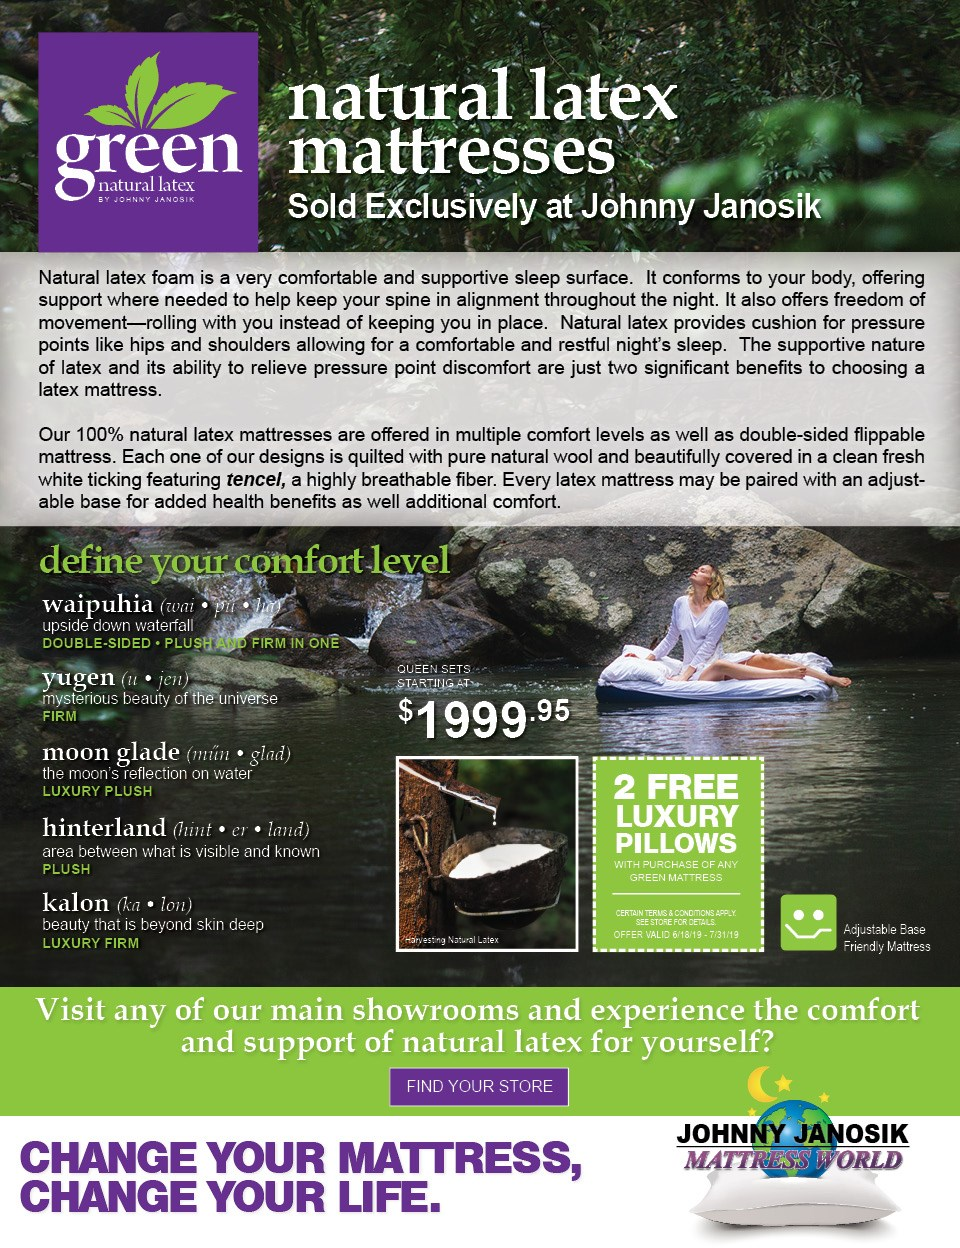 Green Natural Latex Mattresses Sold Only At Johnny Janosik